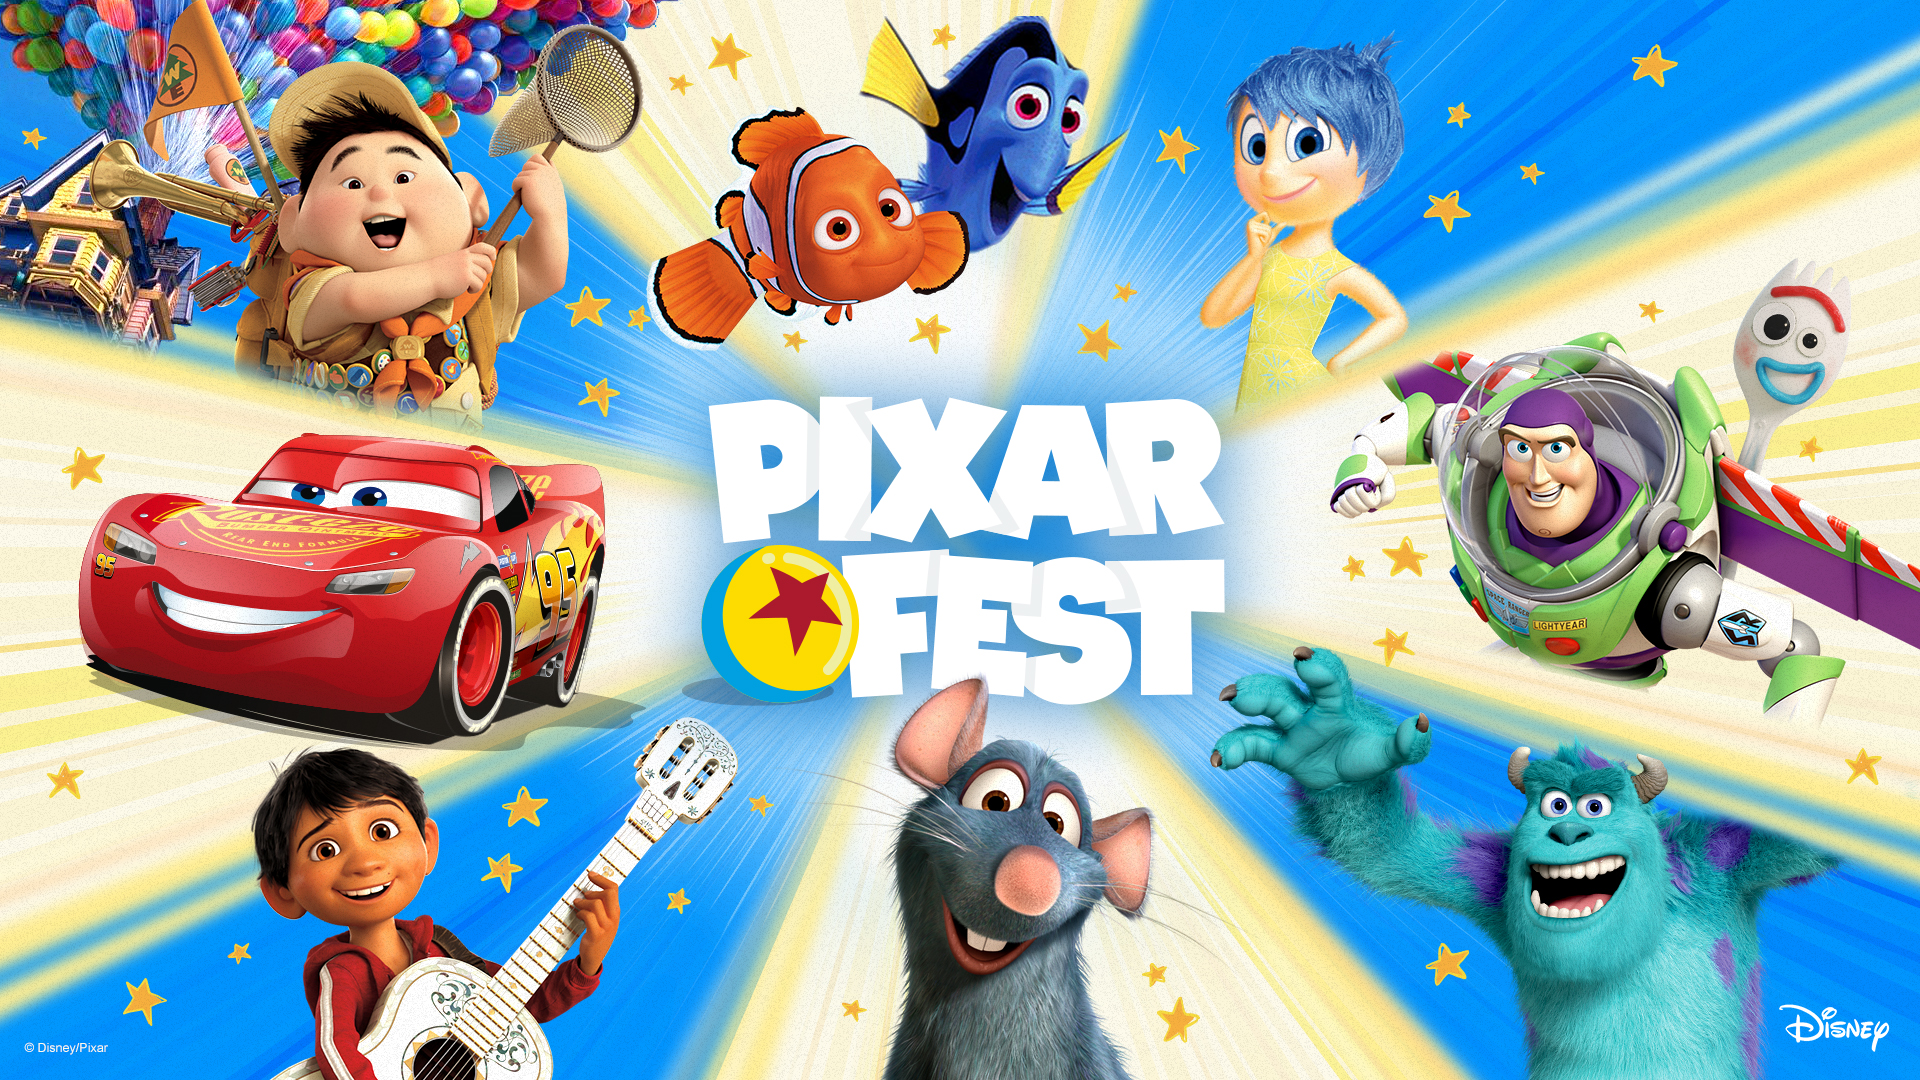 Disney Launches Pixar Fest, A Virtual Family Festival, To Mark The 25th Anniversary Of Disney And Pixar's Toy Story